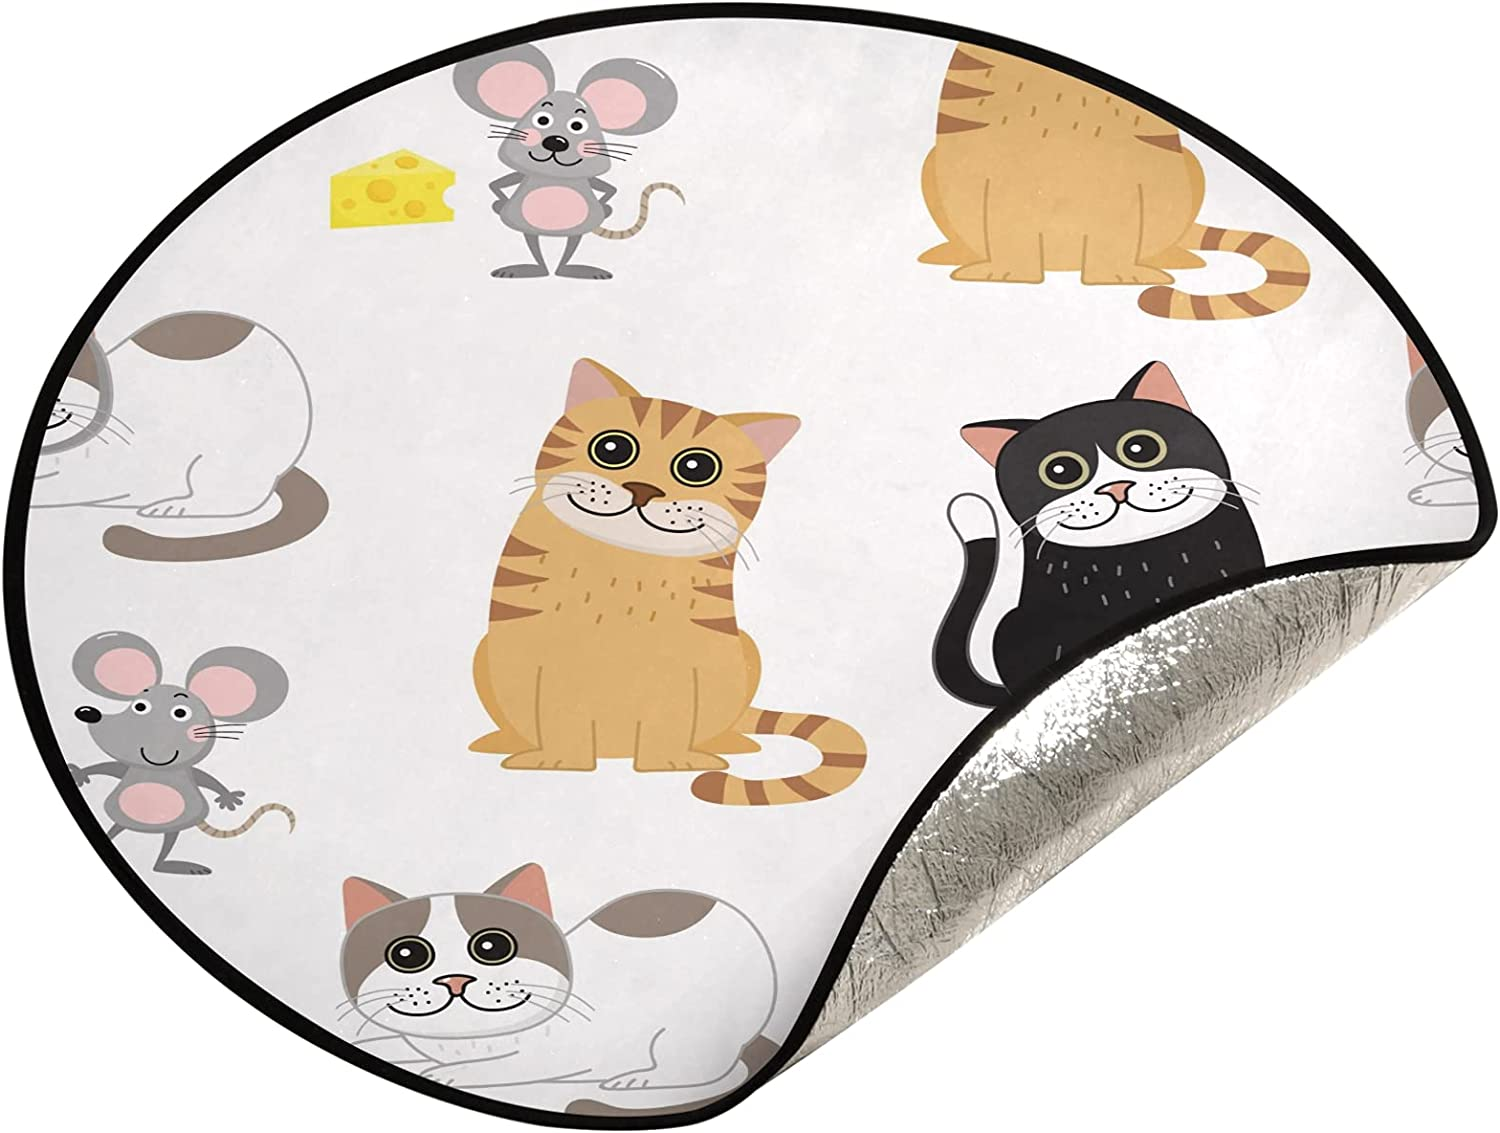 xigua 28.3 Inch Christmas Tree Stand Mat Excellent Wa Cat Price reduction Mouse Cute - and